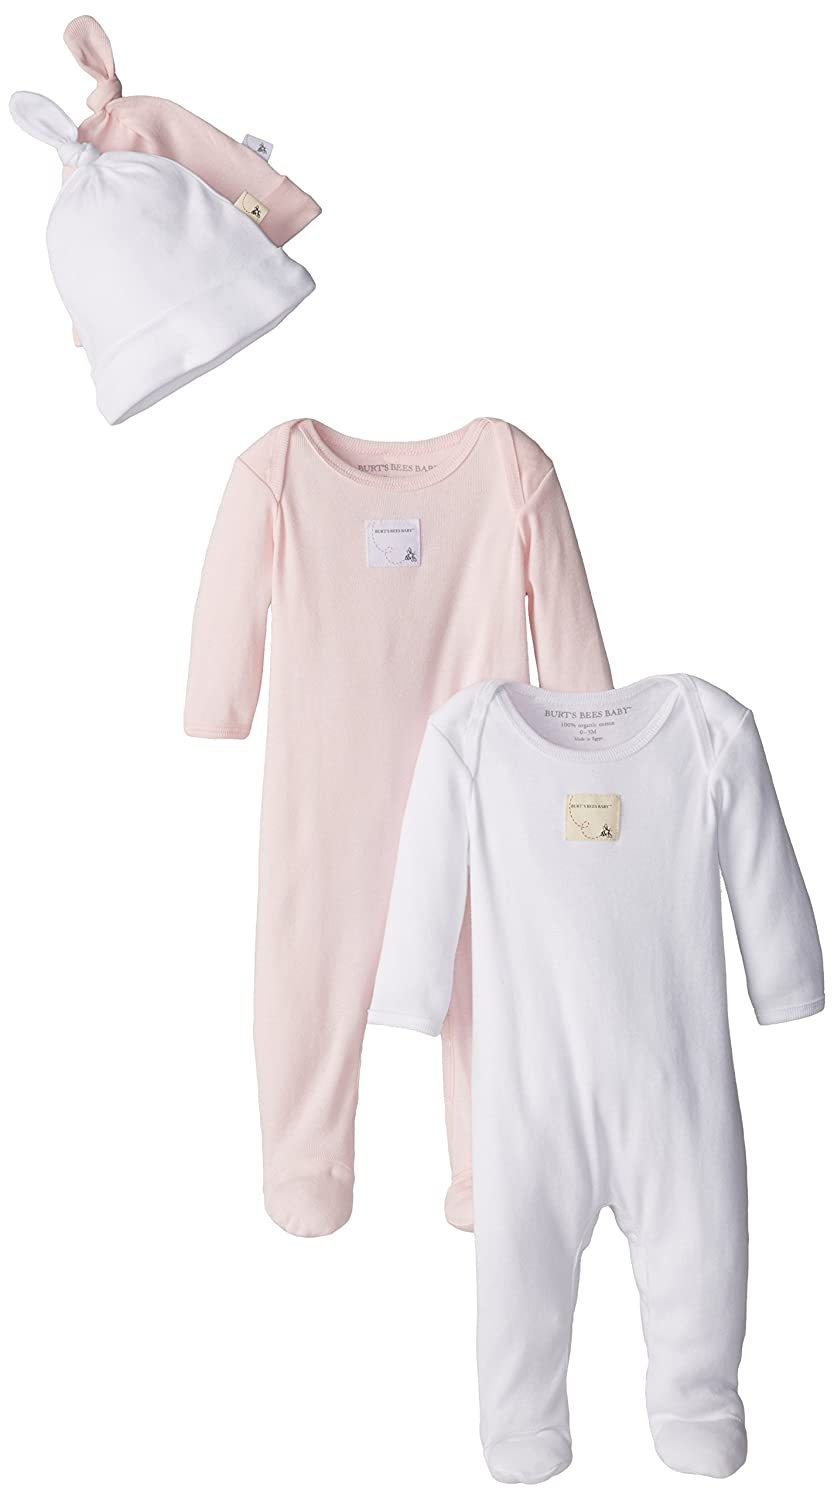 Burt's Bees Baby Set of 2 Bee Essentials Solid Footed Coveralls + 2 Solid Knot Top Hats